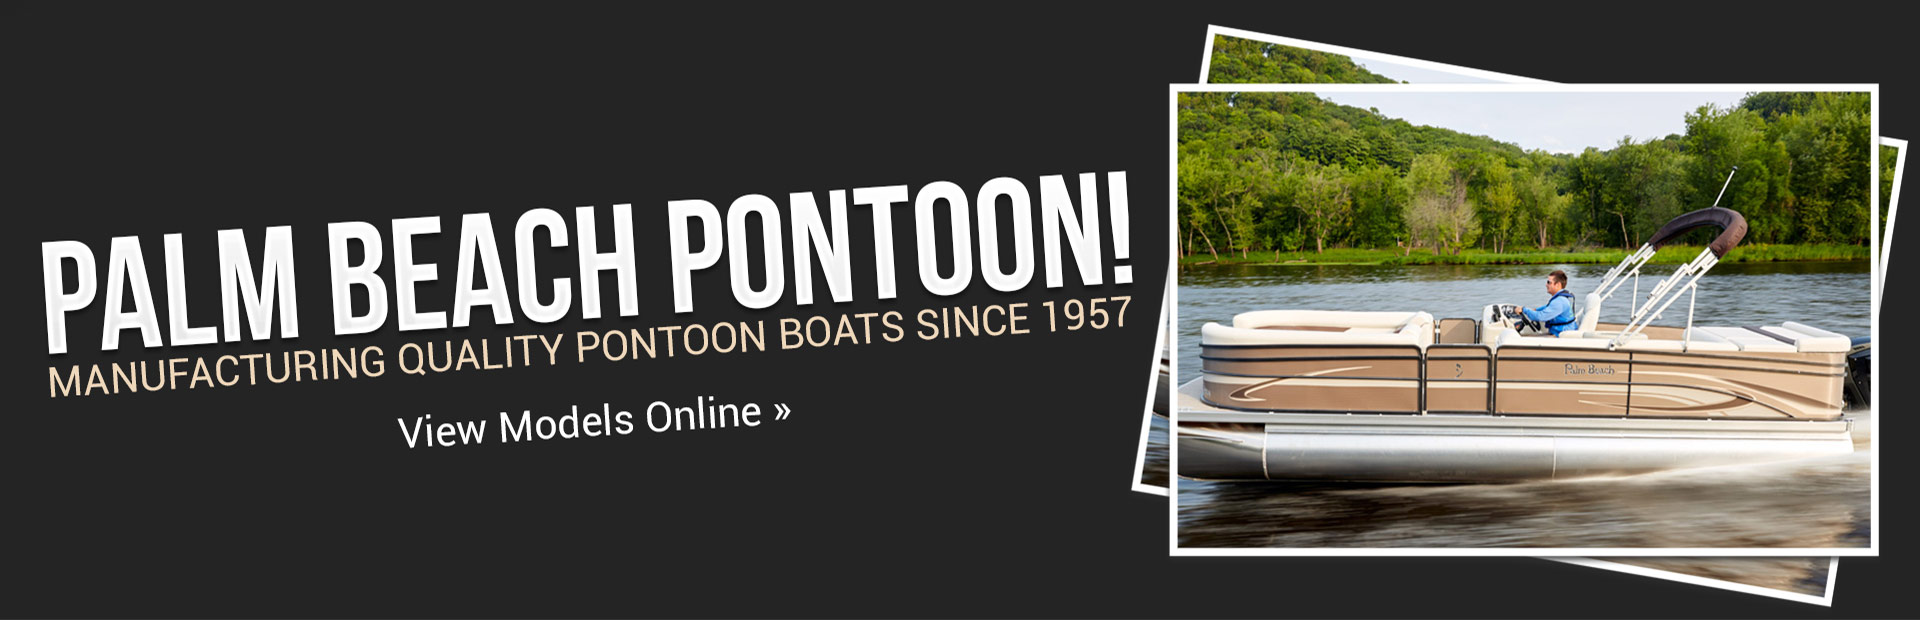 Click here to view Palm Beach pontoons.